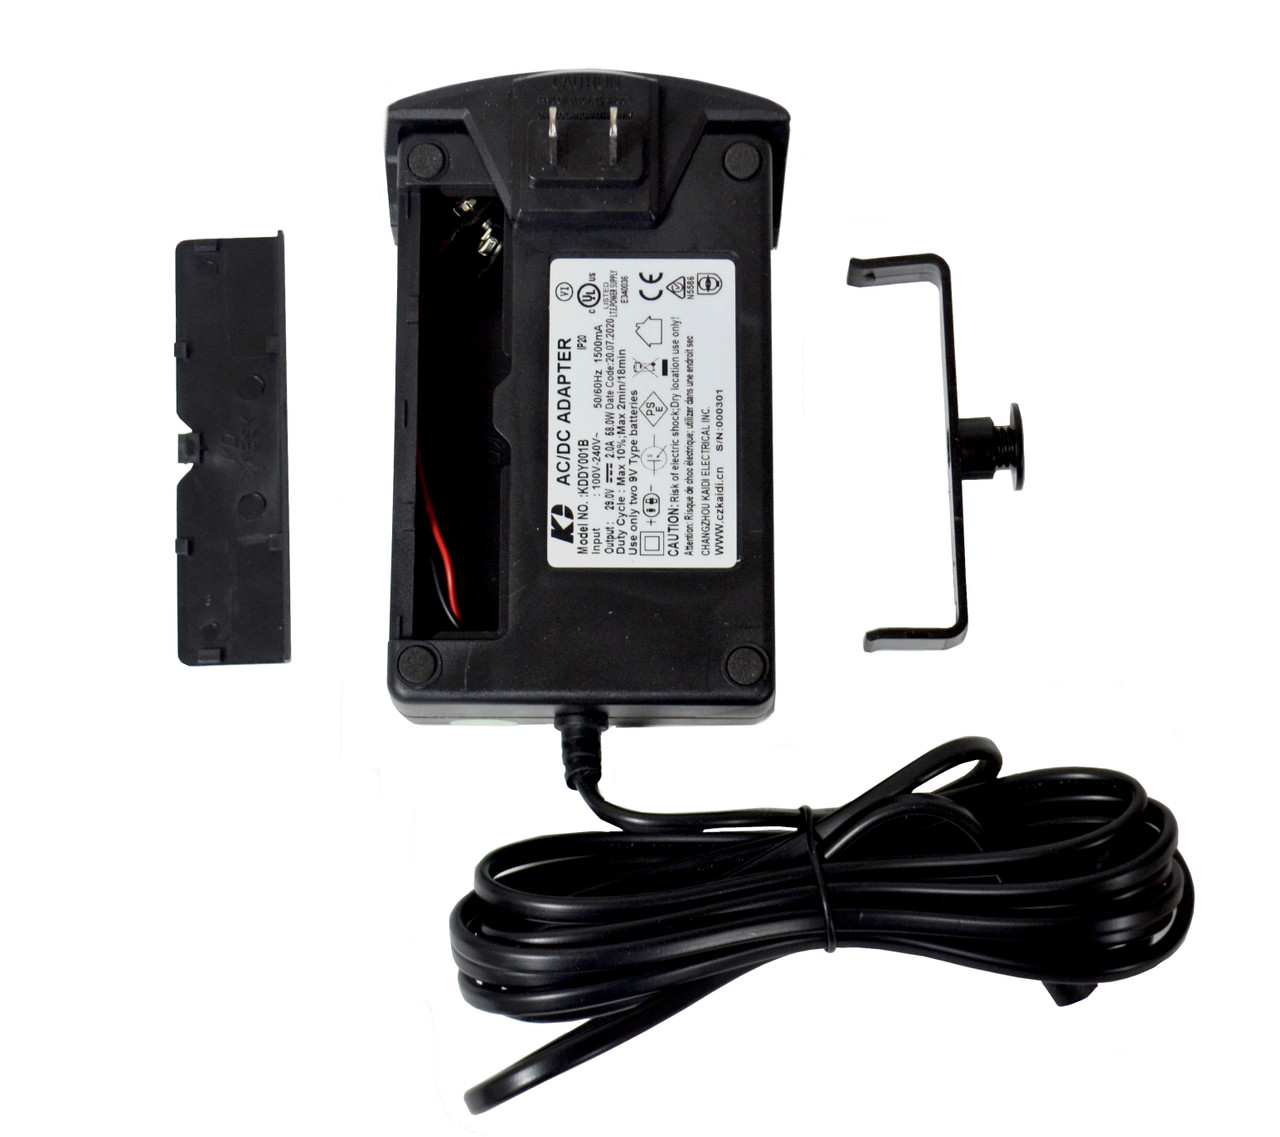 Kaidi Power Supply With 9V Battery Backup For Power Recliners, KDDY001B